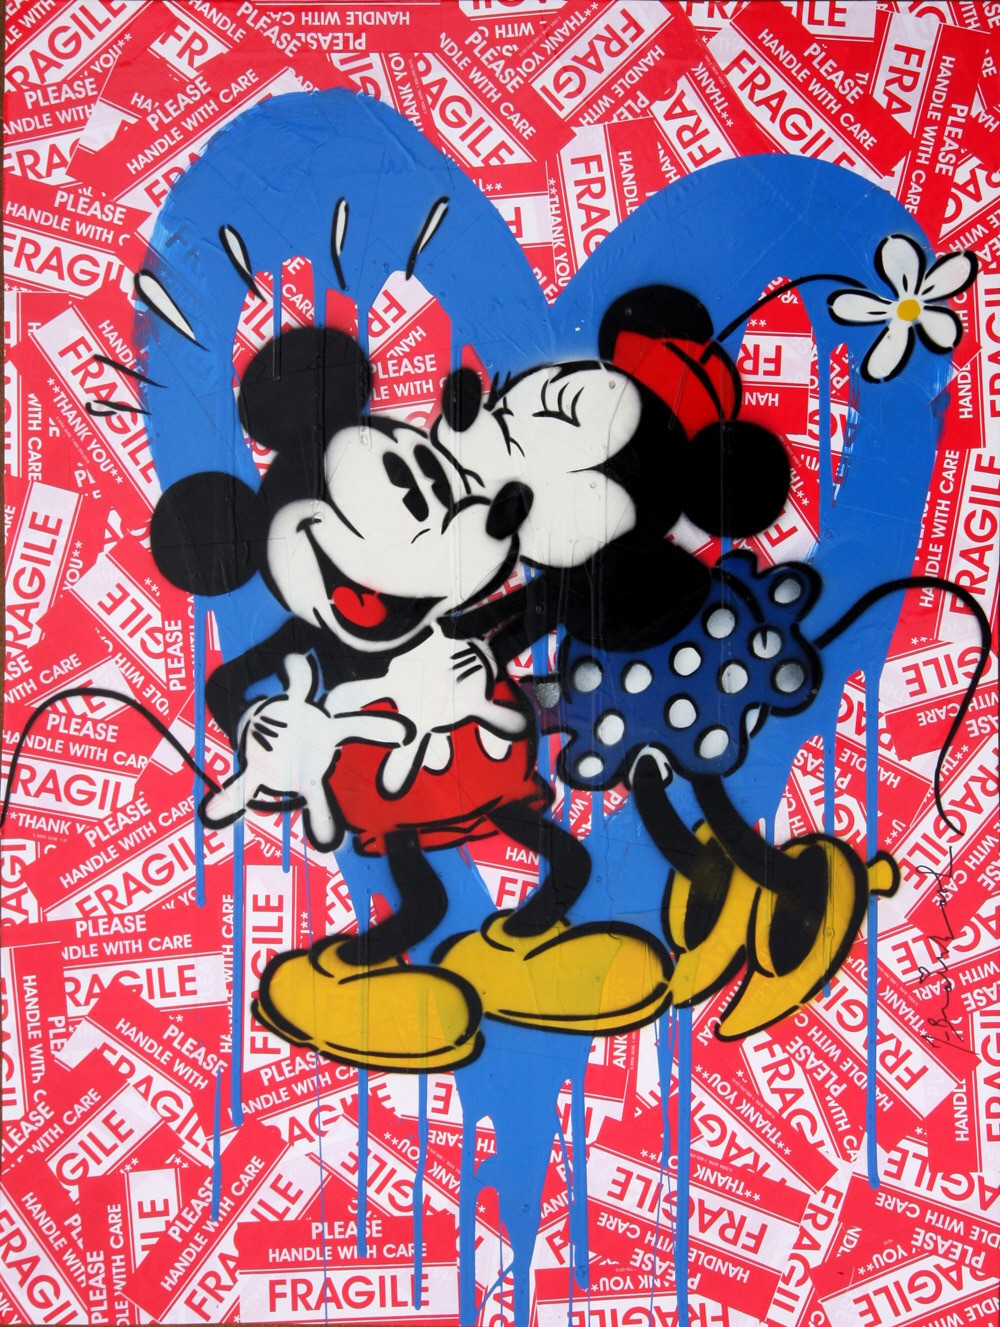 """Artwork by Mr. Brainwash """" Mickey & Minnie (Blue Heart), 2014""""   Mr. Brainwash Original Mixed Media on Paper with Stenciling, Acrylic Painting, and Spray Painting. A one-of-a-kind original artwork featuring the Mickey and Minnie Mouse kiss with Blue Heart.   Reference via   1stdibs Gallery"""